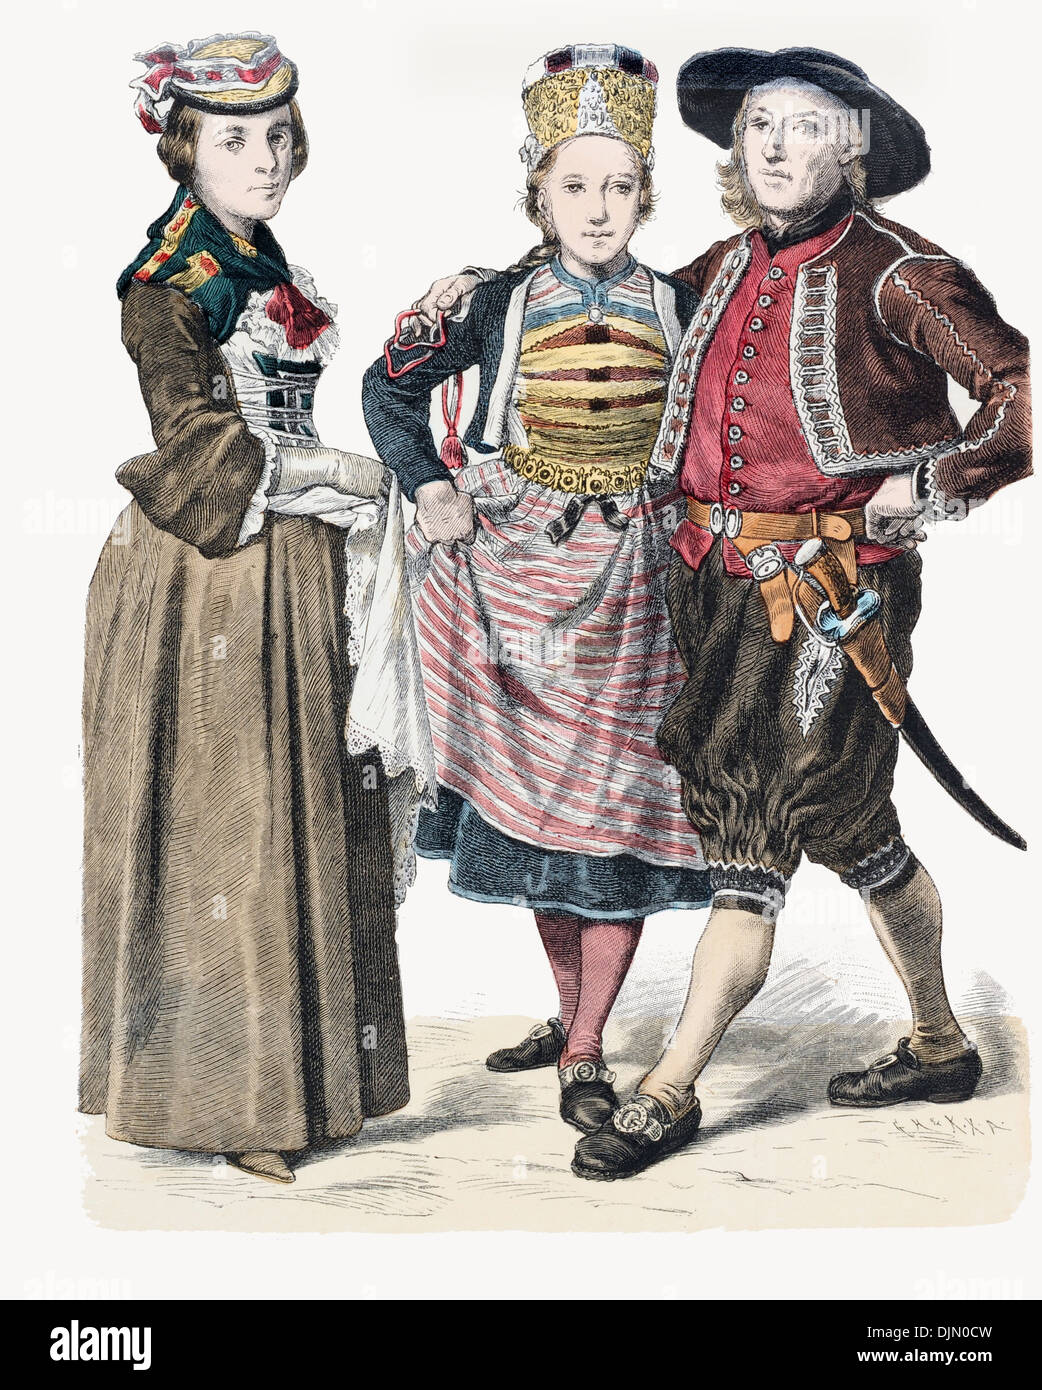 Late 18th century XVIII 1700s Swiss couple from Zurich and lady on left from Wallis - Stock Image